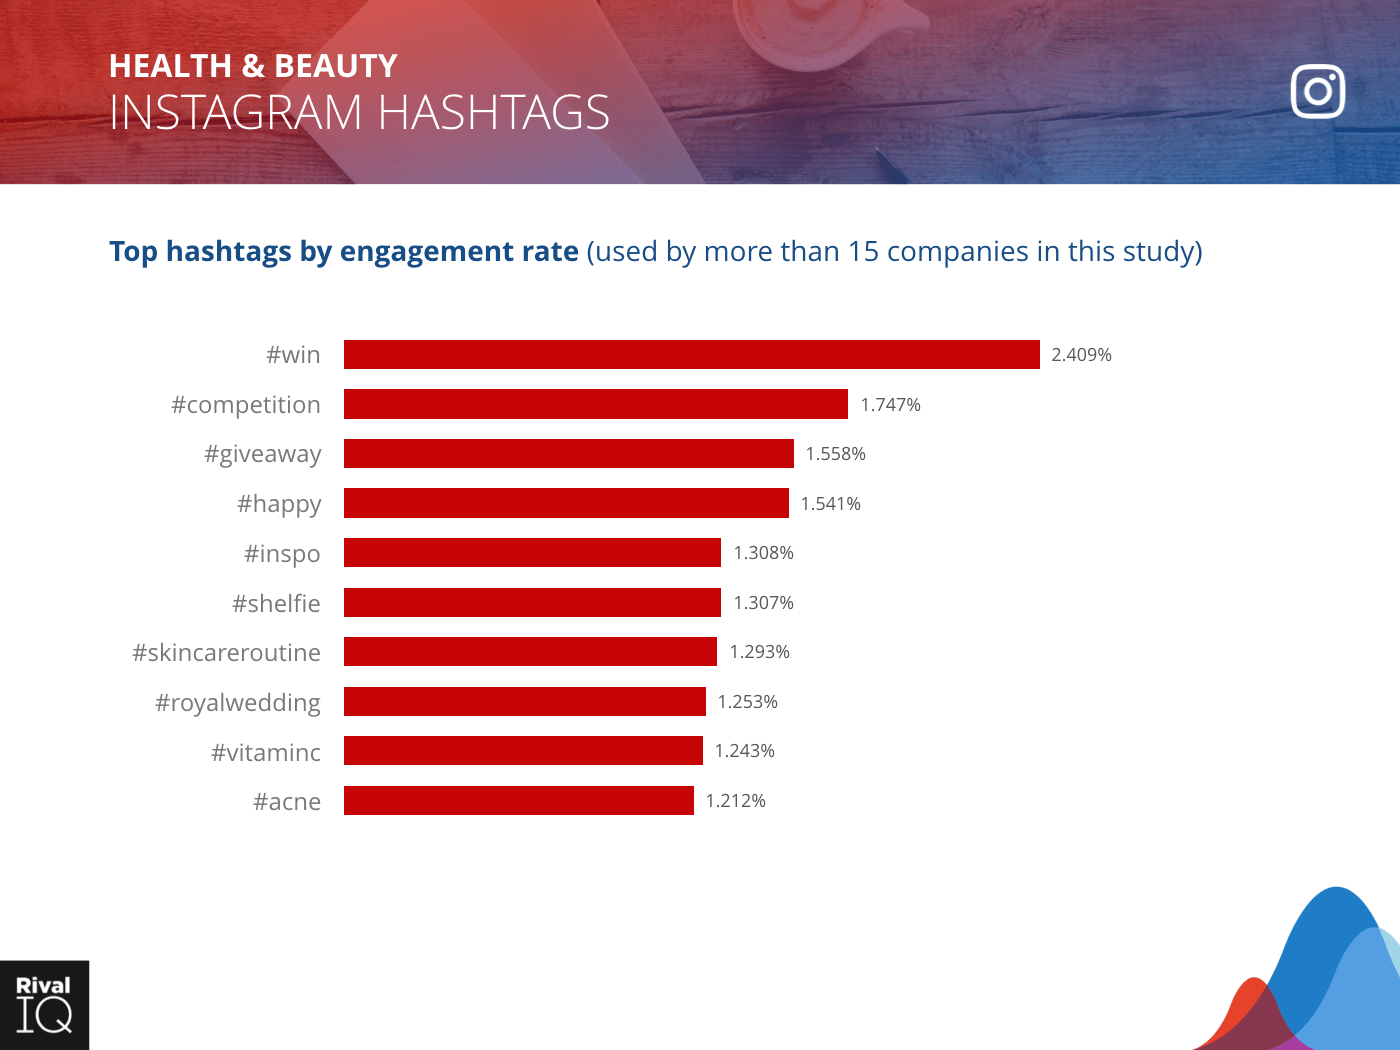 Health & Beauty Industry: bar graph, top hashtags by engagement rate on Instagram